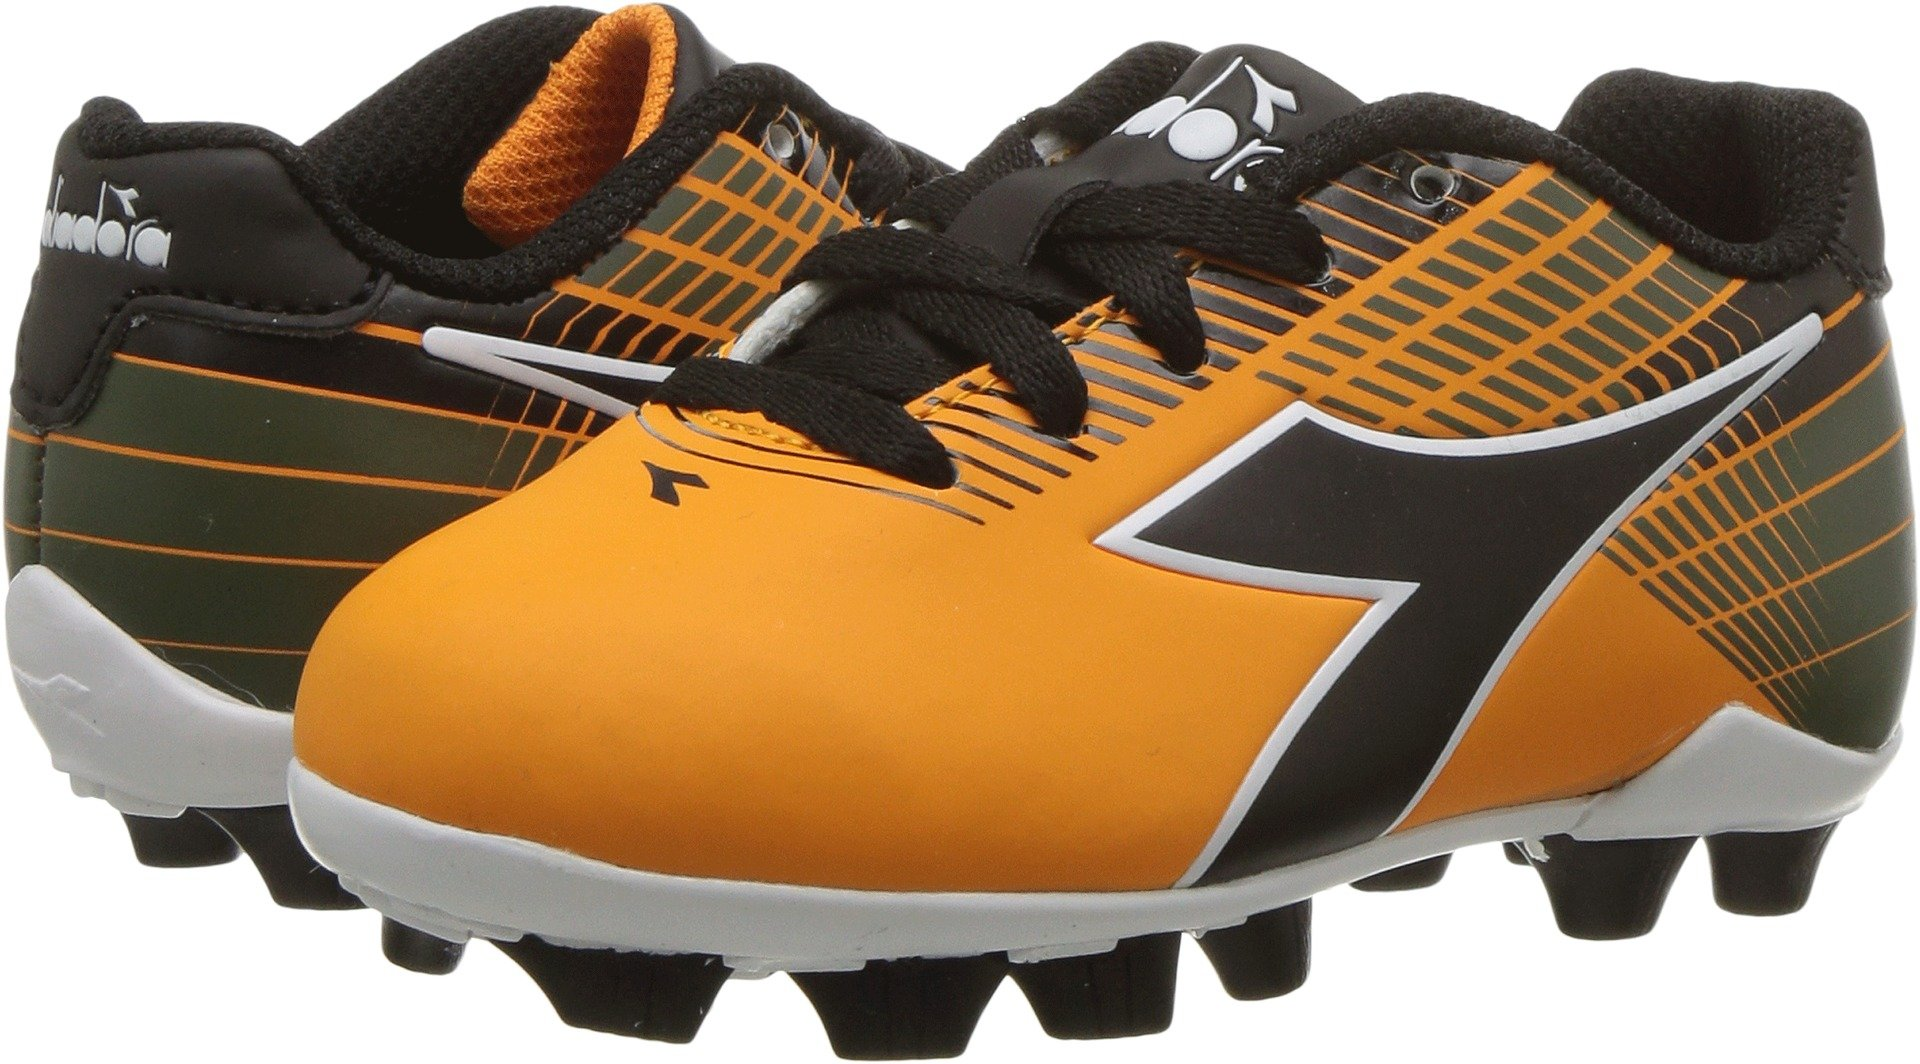 Diadora Kids Unisex Ladro MD Jr Soccer (Toddler/Little Kid/Big Kid) Orange/Black 8 Toddler M